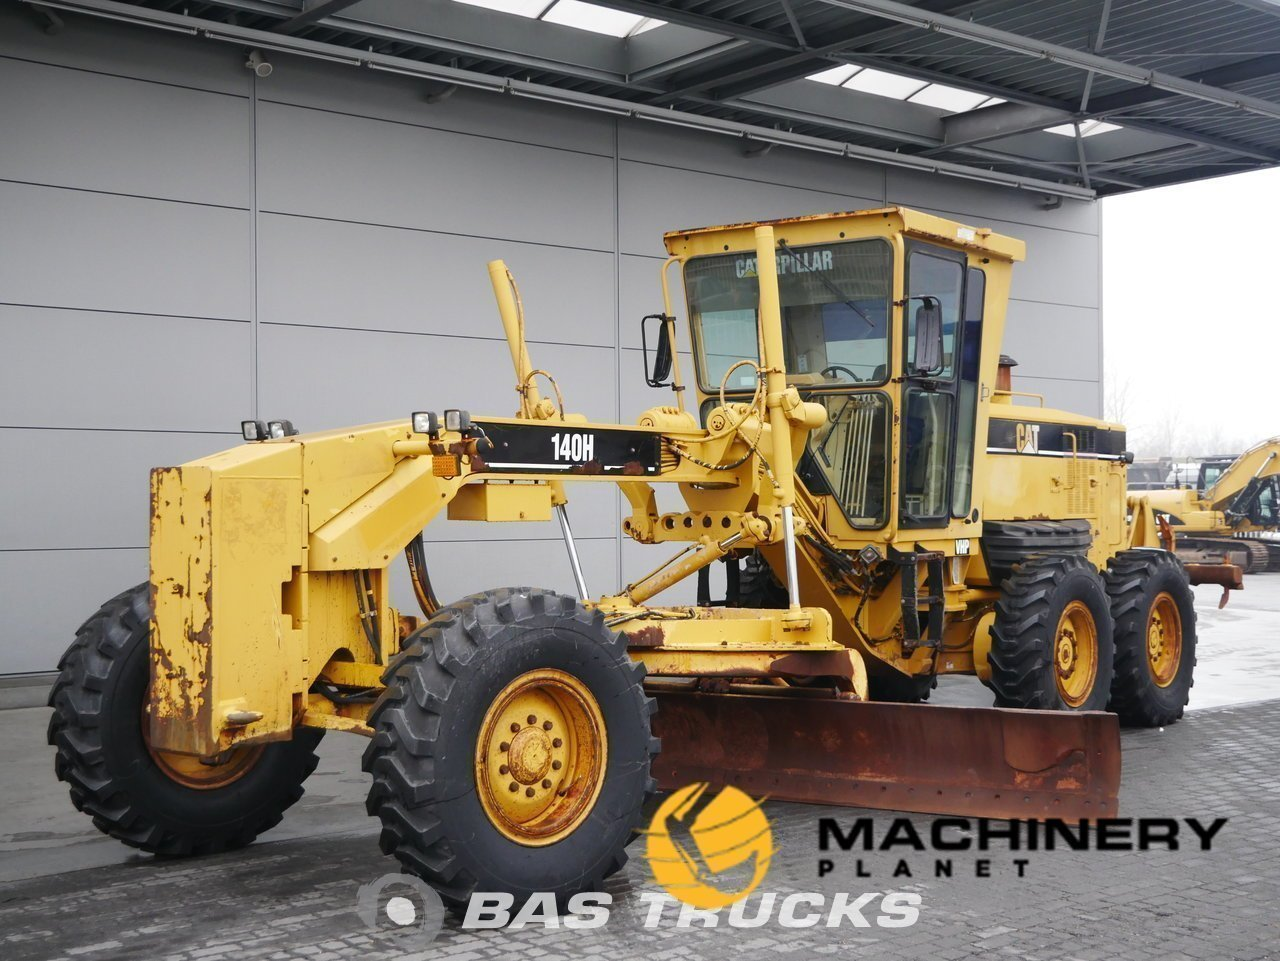 Used-Construction-equipment-Caterpillar-140H-6X4-2007_145029_1-1553938025778_5c9f3669bddab-1.jpg